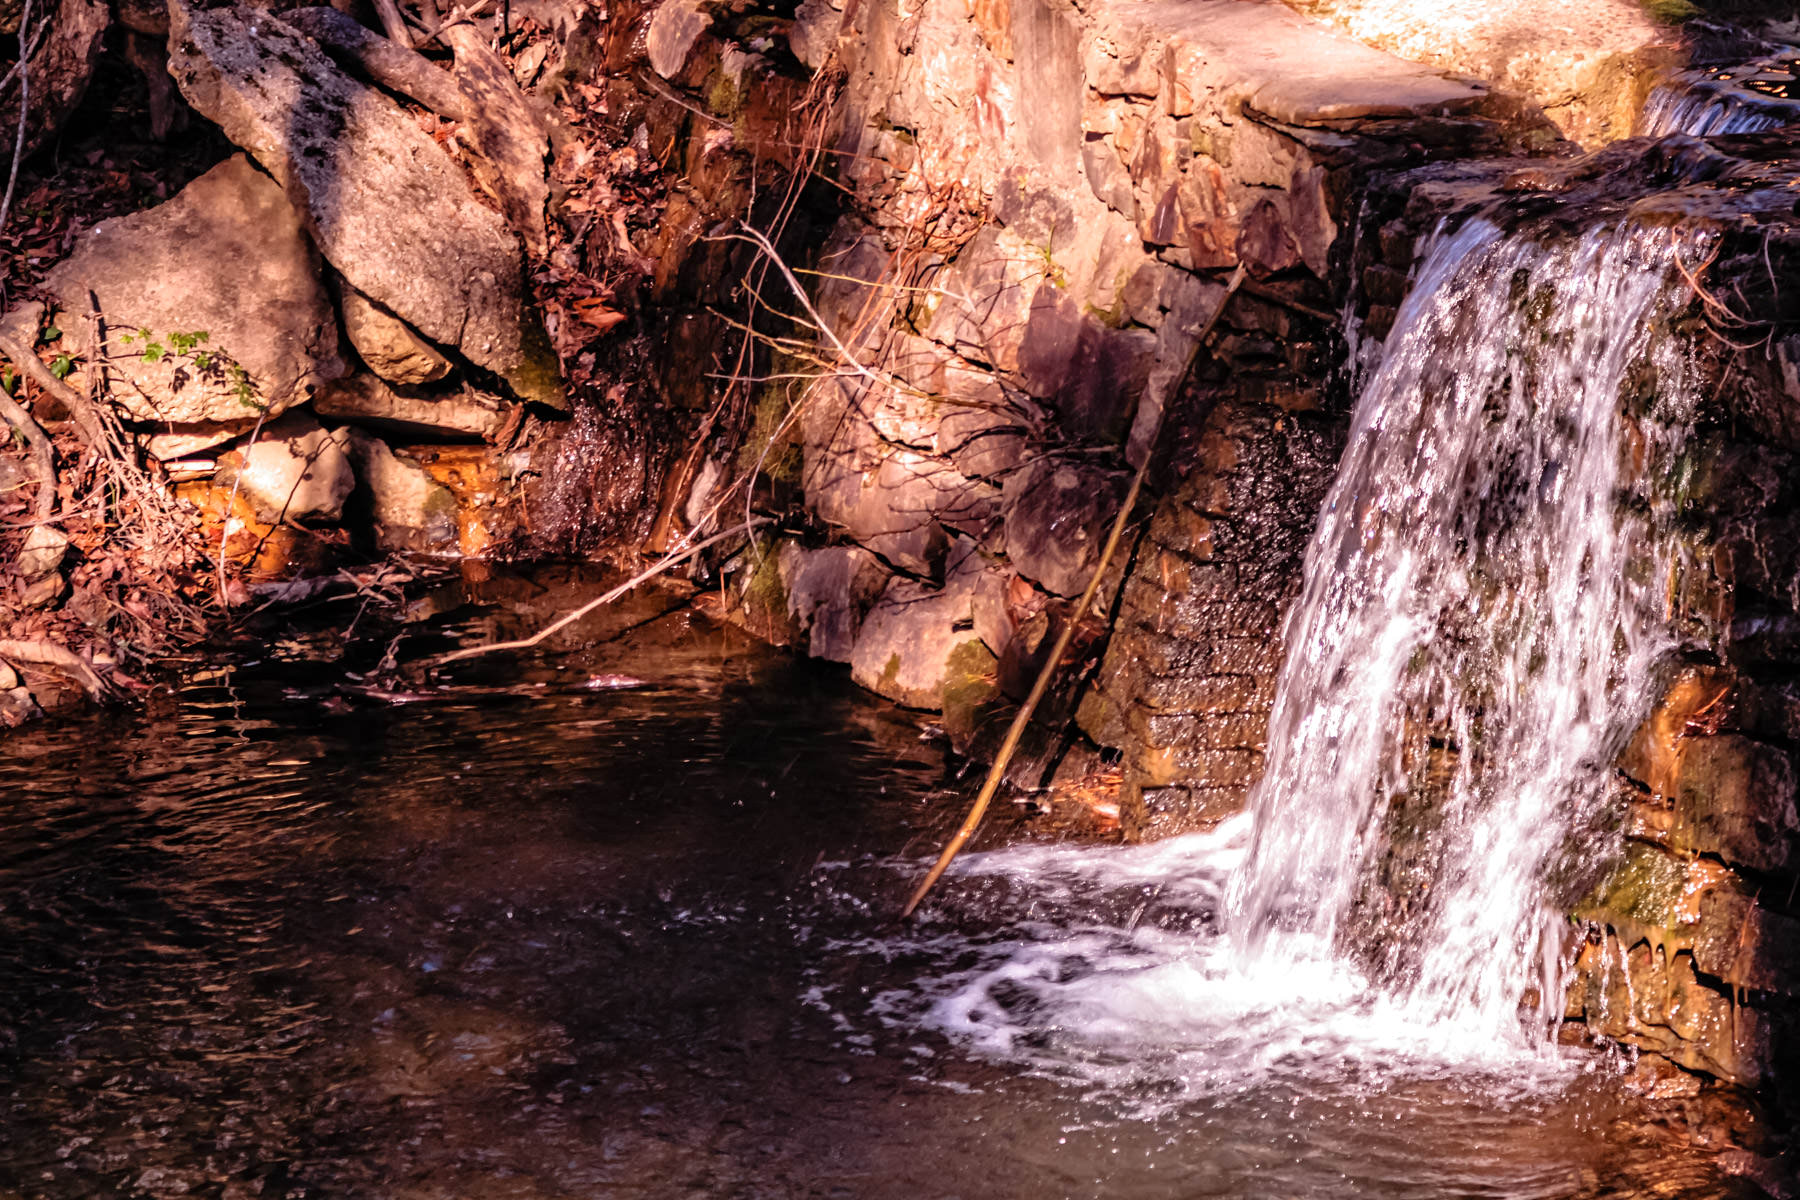 A small waterfall in Hot Springs, Arkansas.